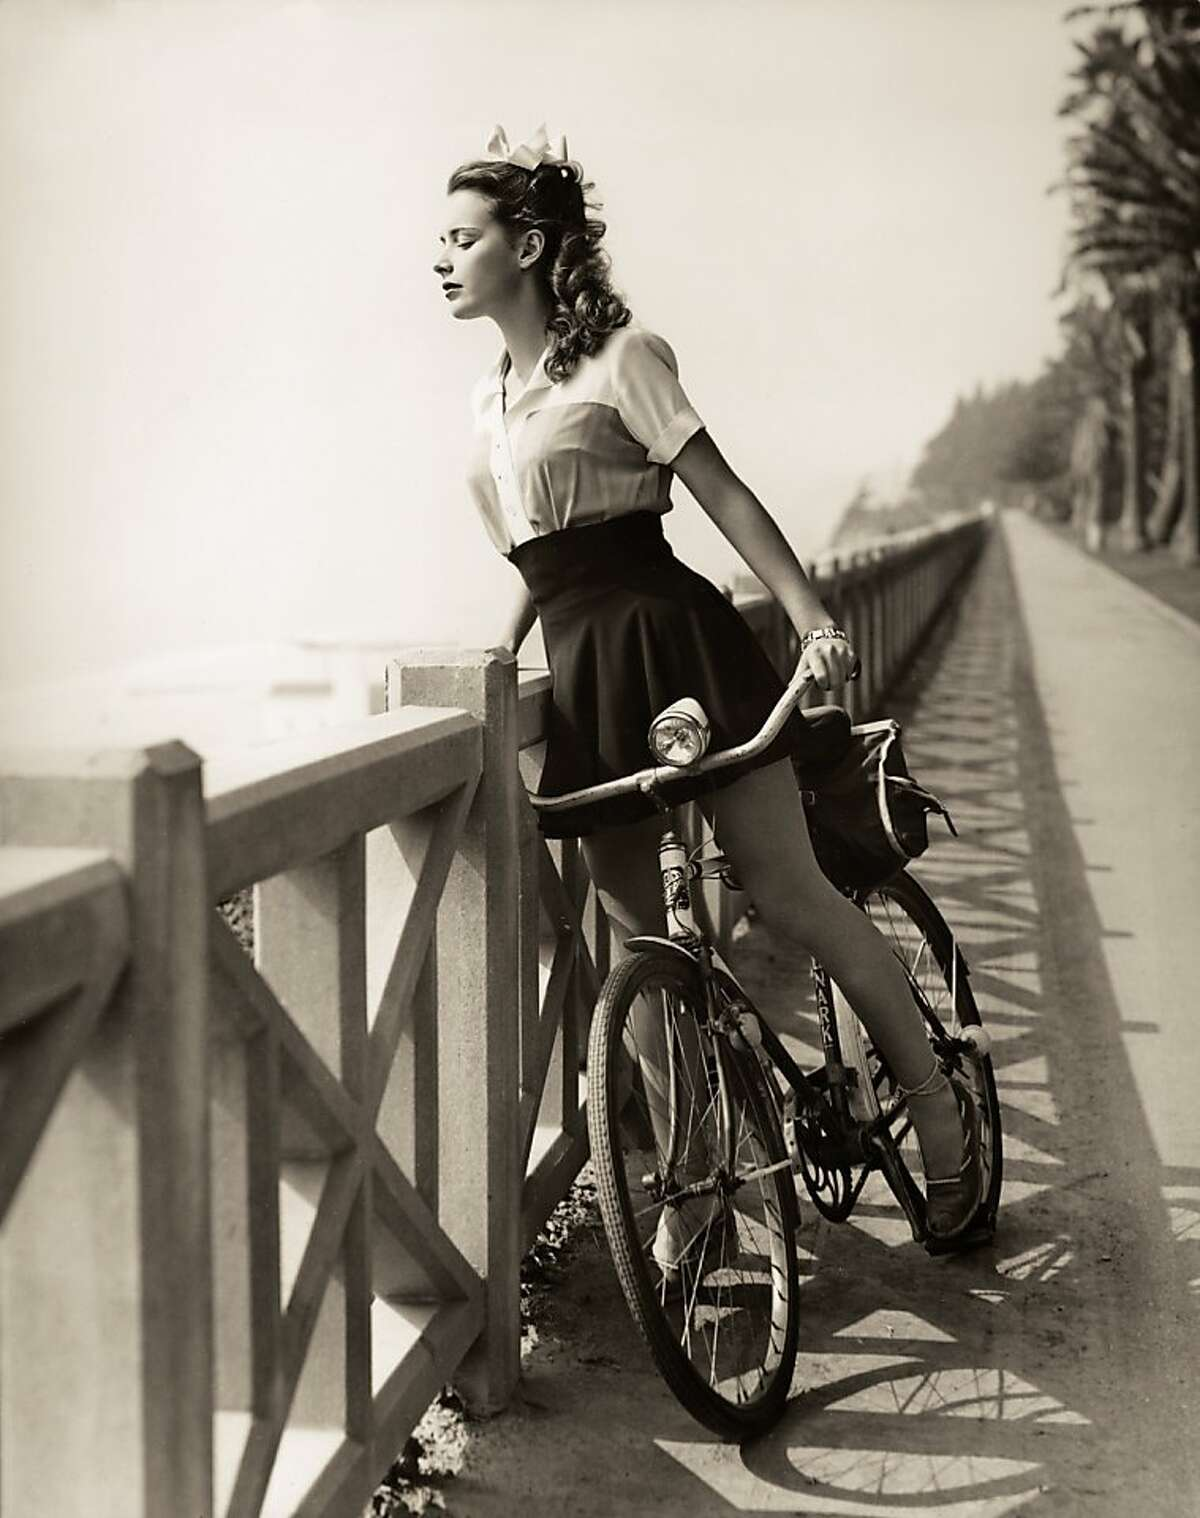 """Susan Peters from Steven Rea's book """"Hollywood Rides a Bike: Cycling With the Stars."""""""